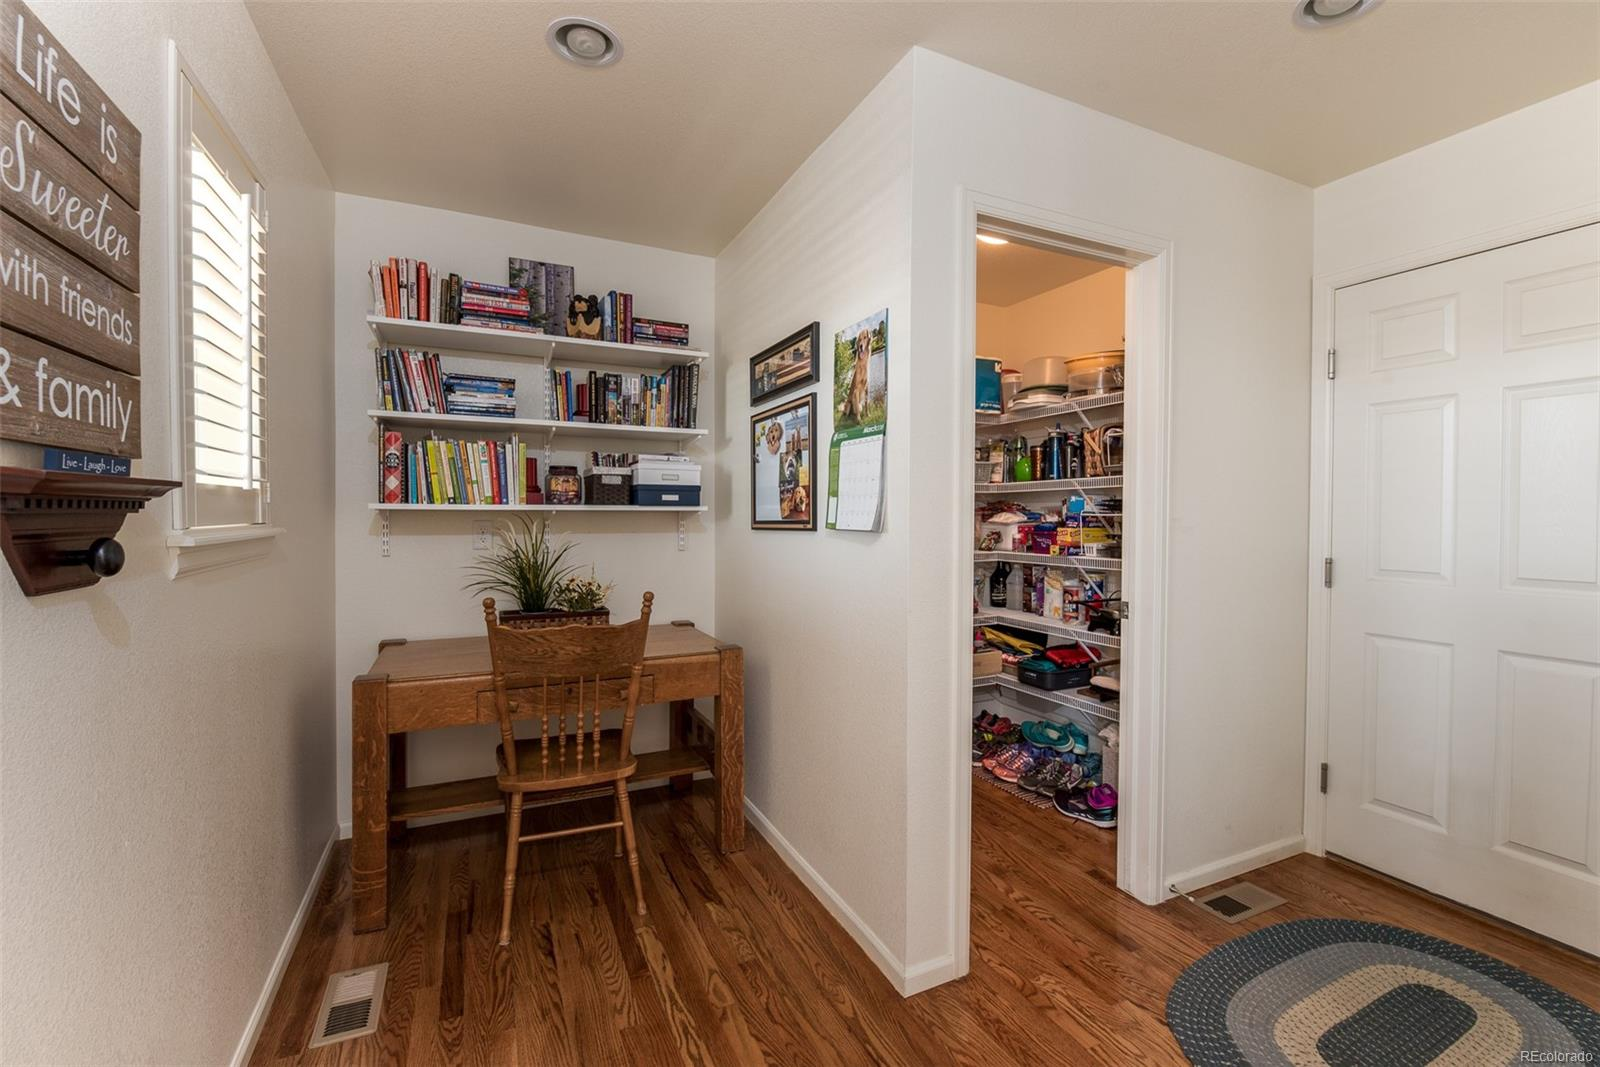 Oversized pantry, Built-in cubbies and coat rack (not pictured) in oversized mud